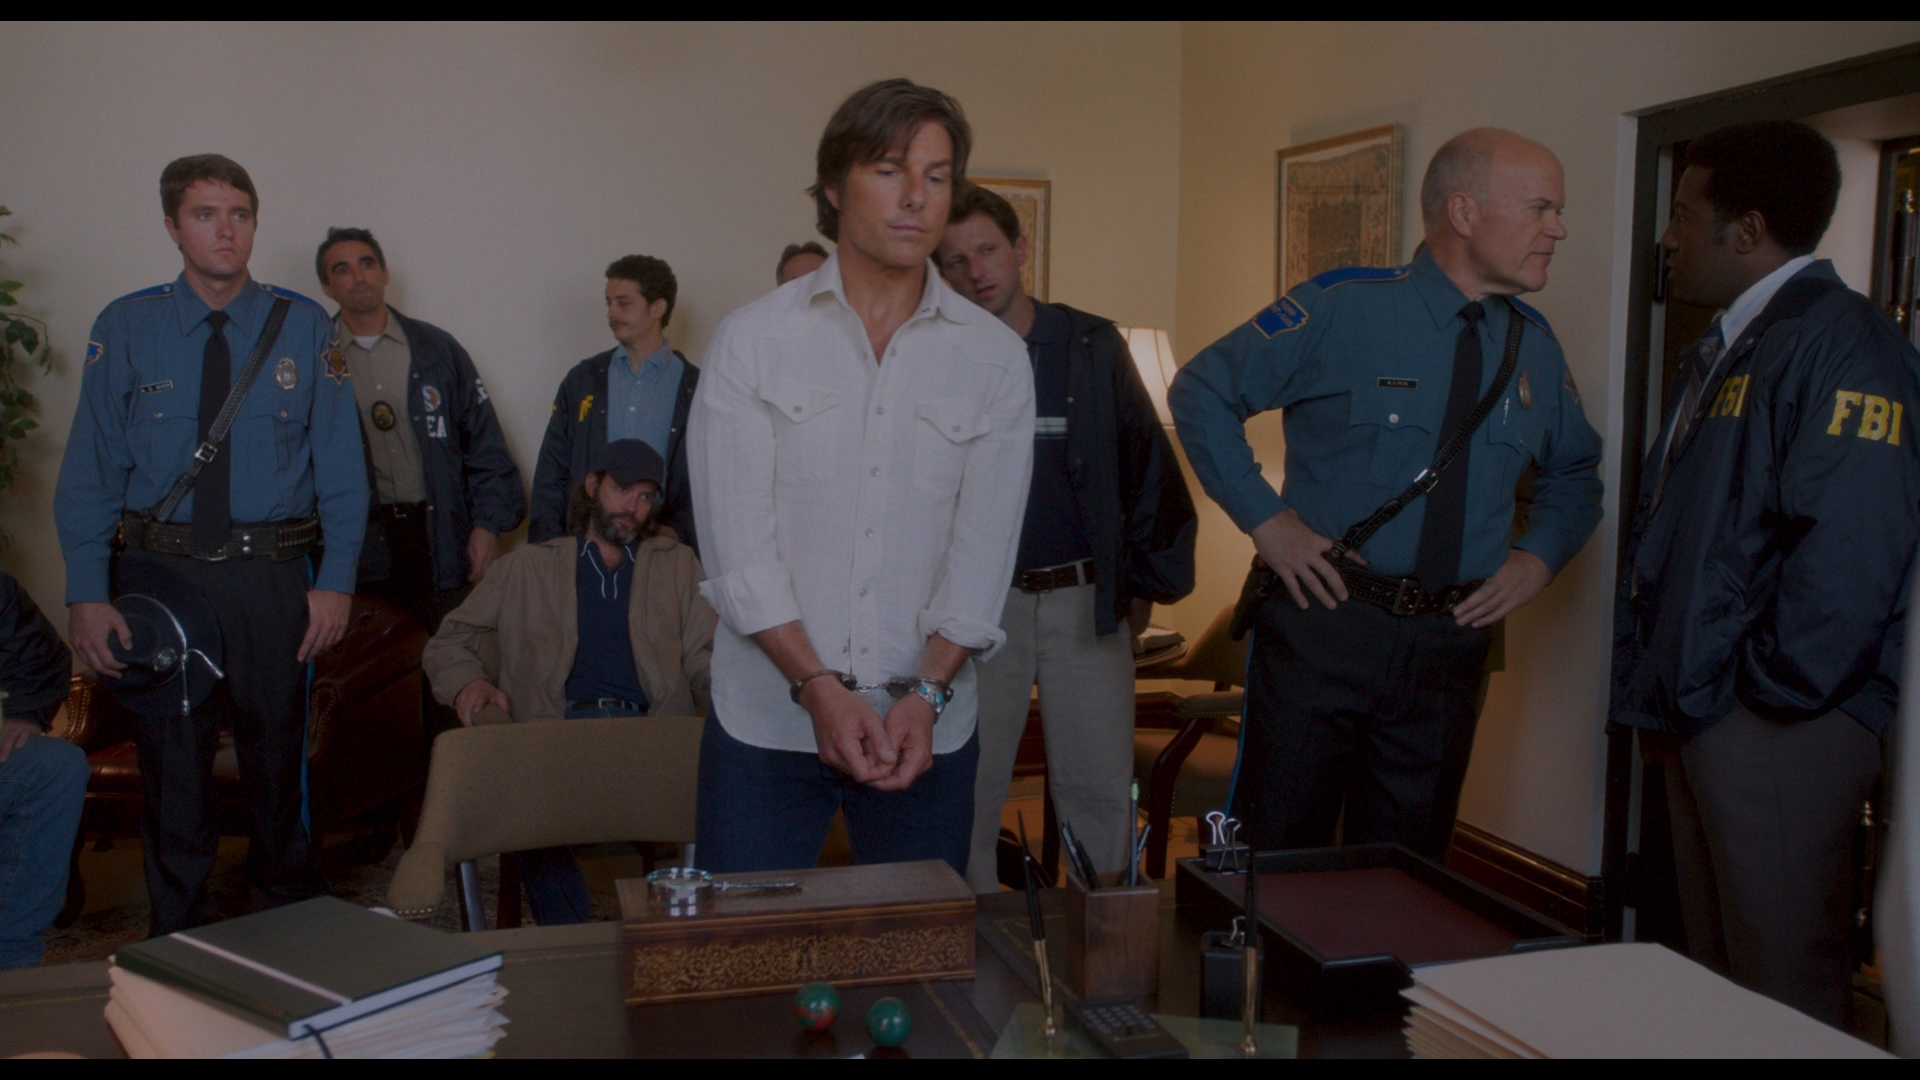 AMERICAN MADE (2017) - Barry Seal's (Tom Cruise) Costume - Image 18 of 23